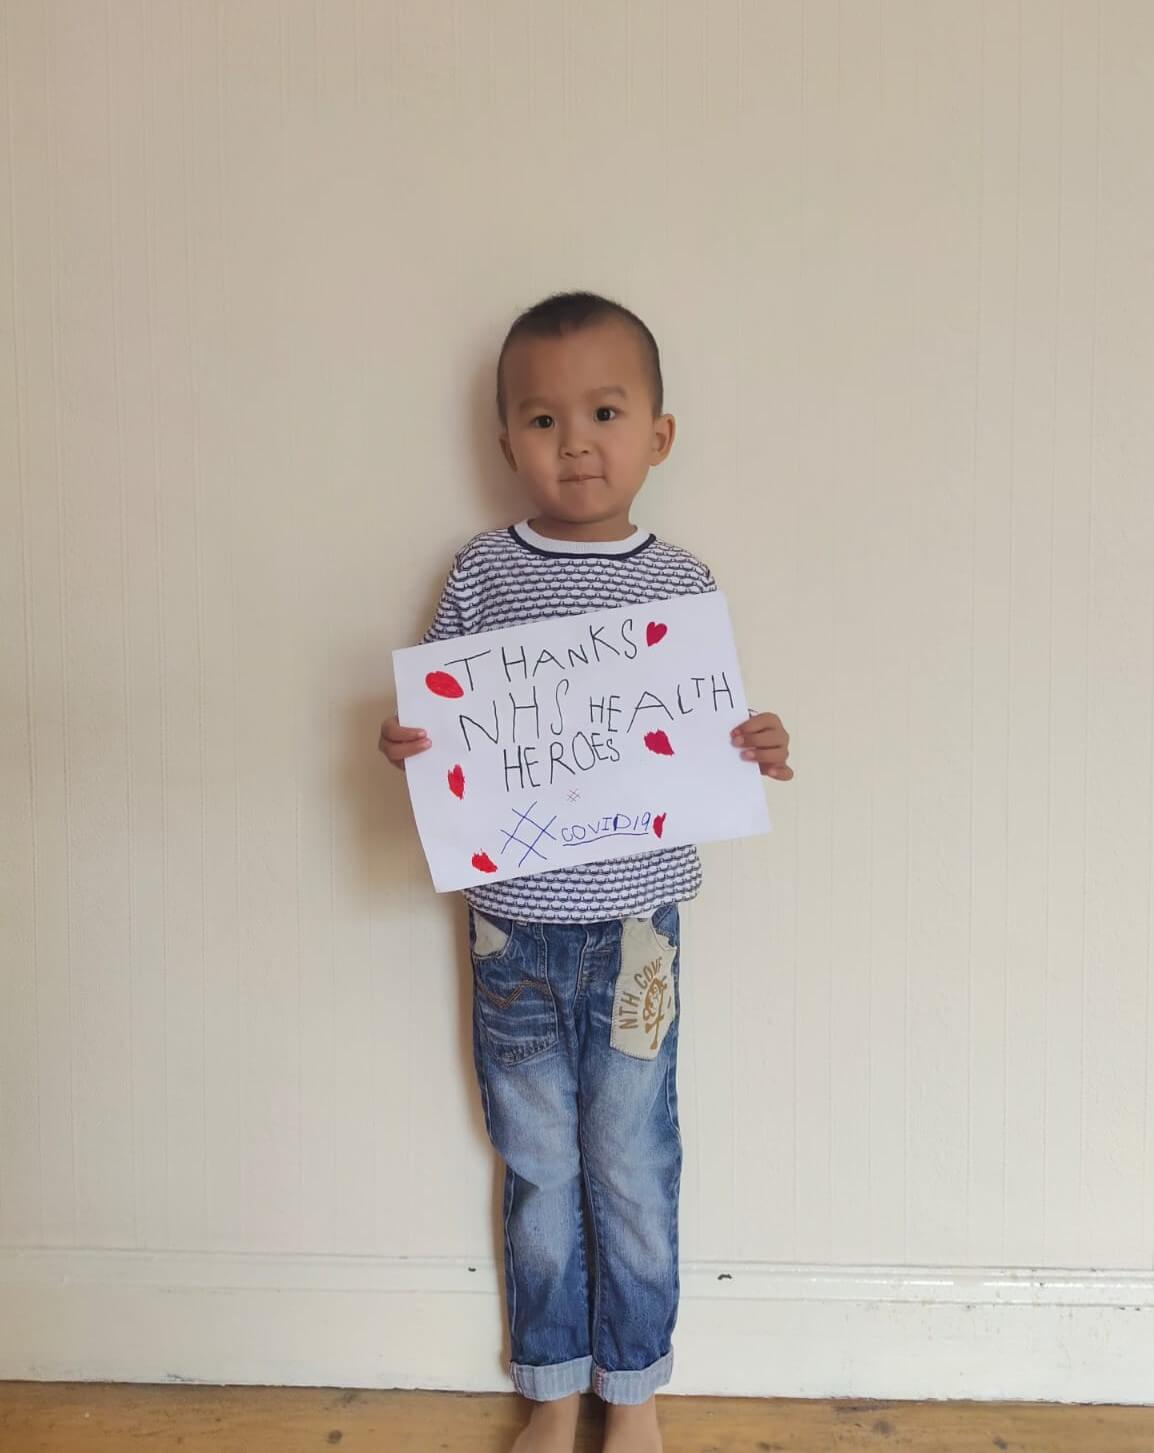 01: A young boy showing his support for the NHS